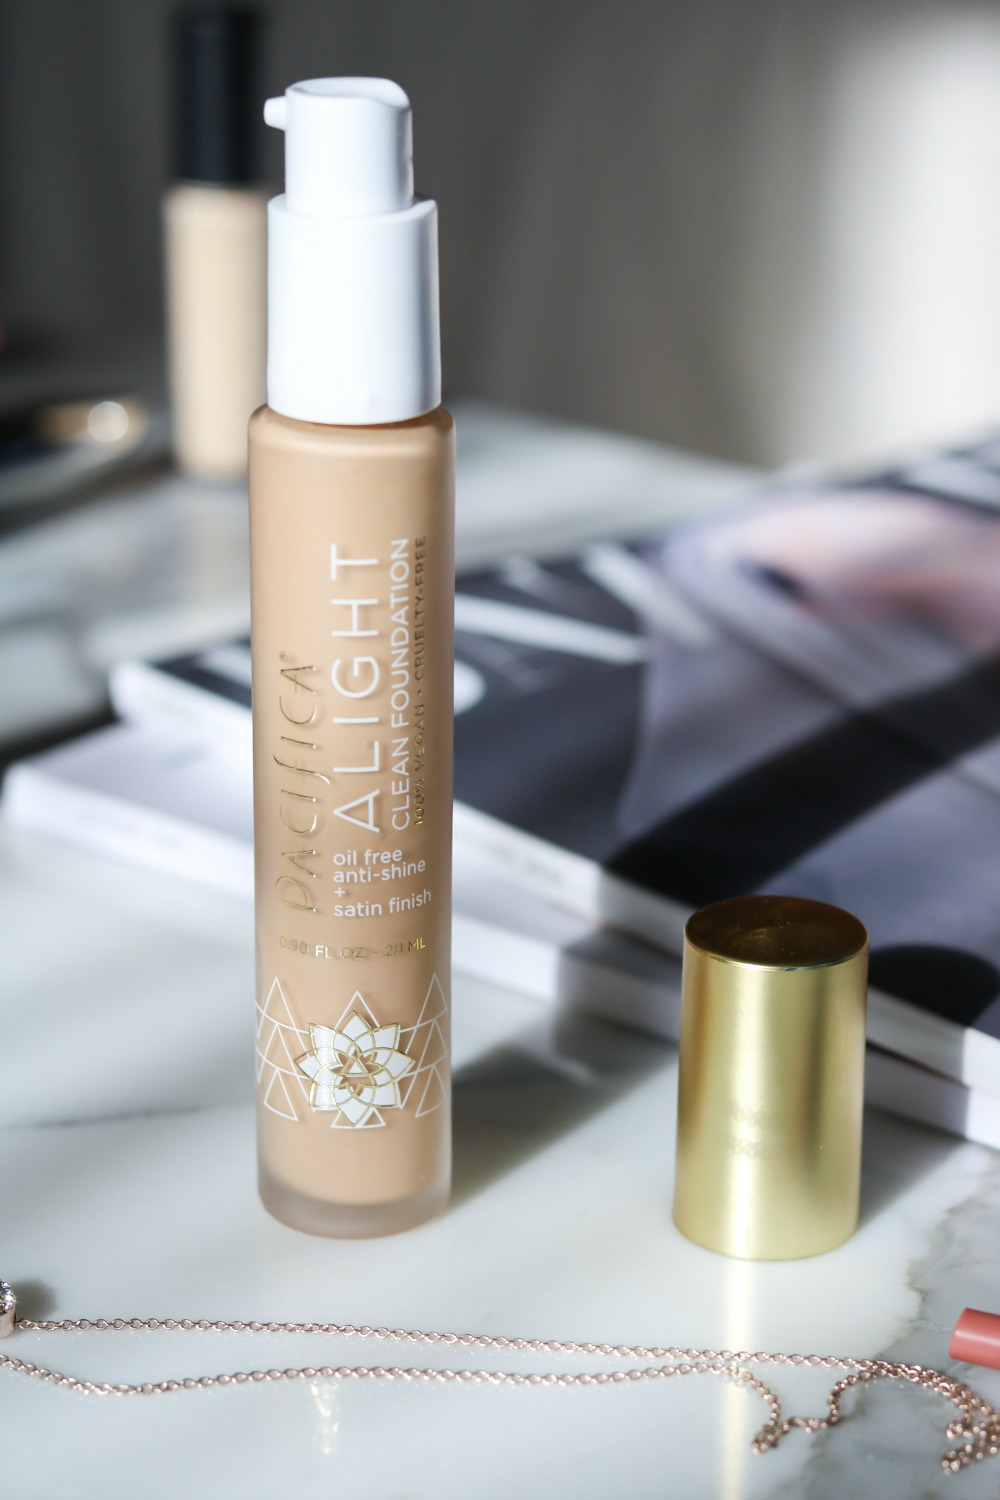 Pacifica Foundation Review I Clean, Vegan and Cruelty-Free #Makeup